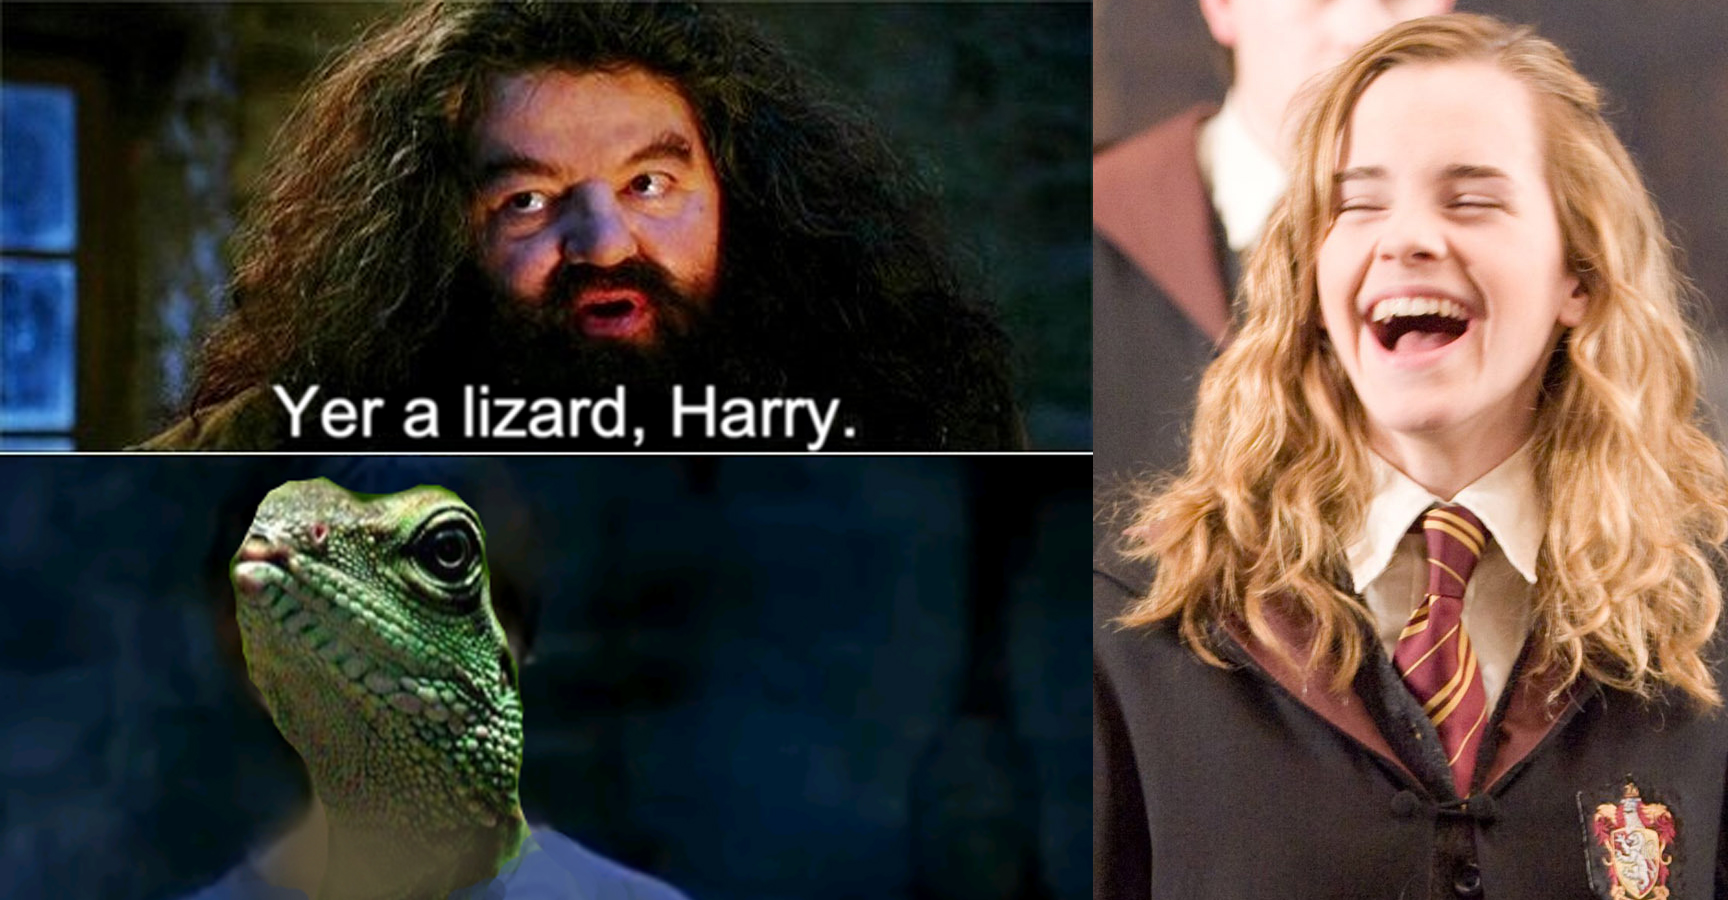 15 Hilarious Quot You Re A Wizard Harry Quot Memes That Will Make